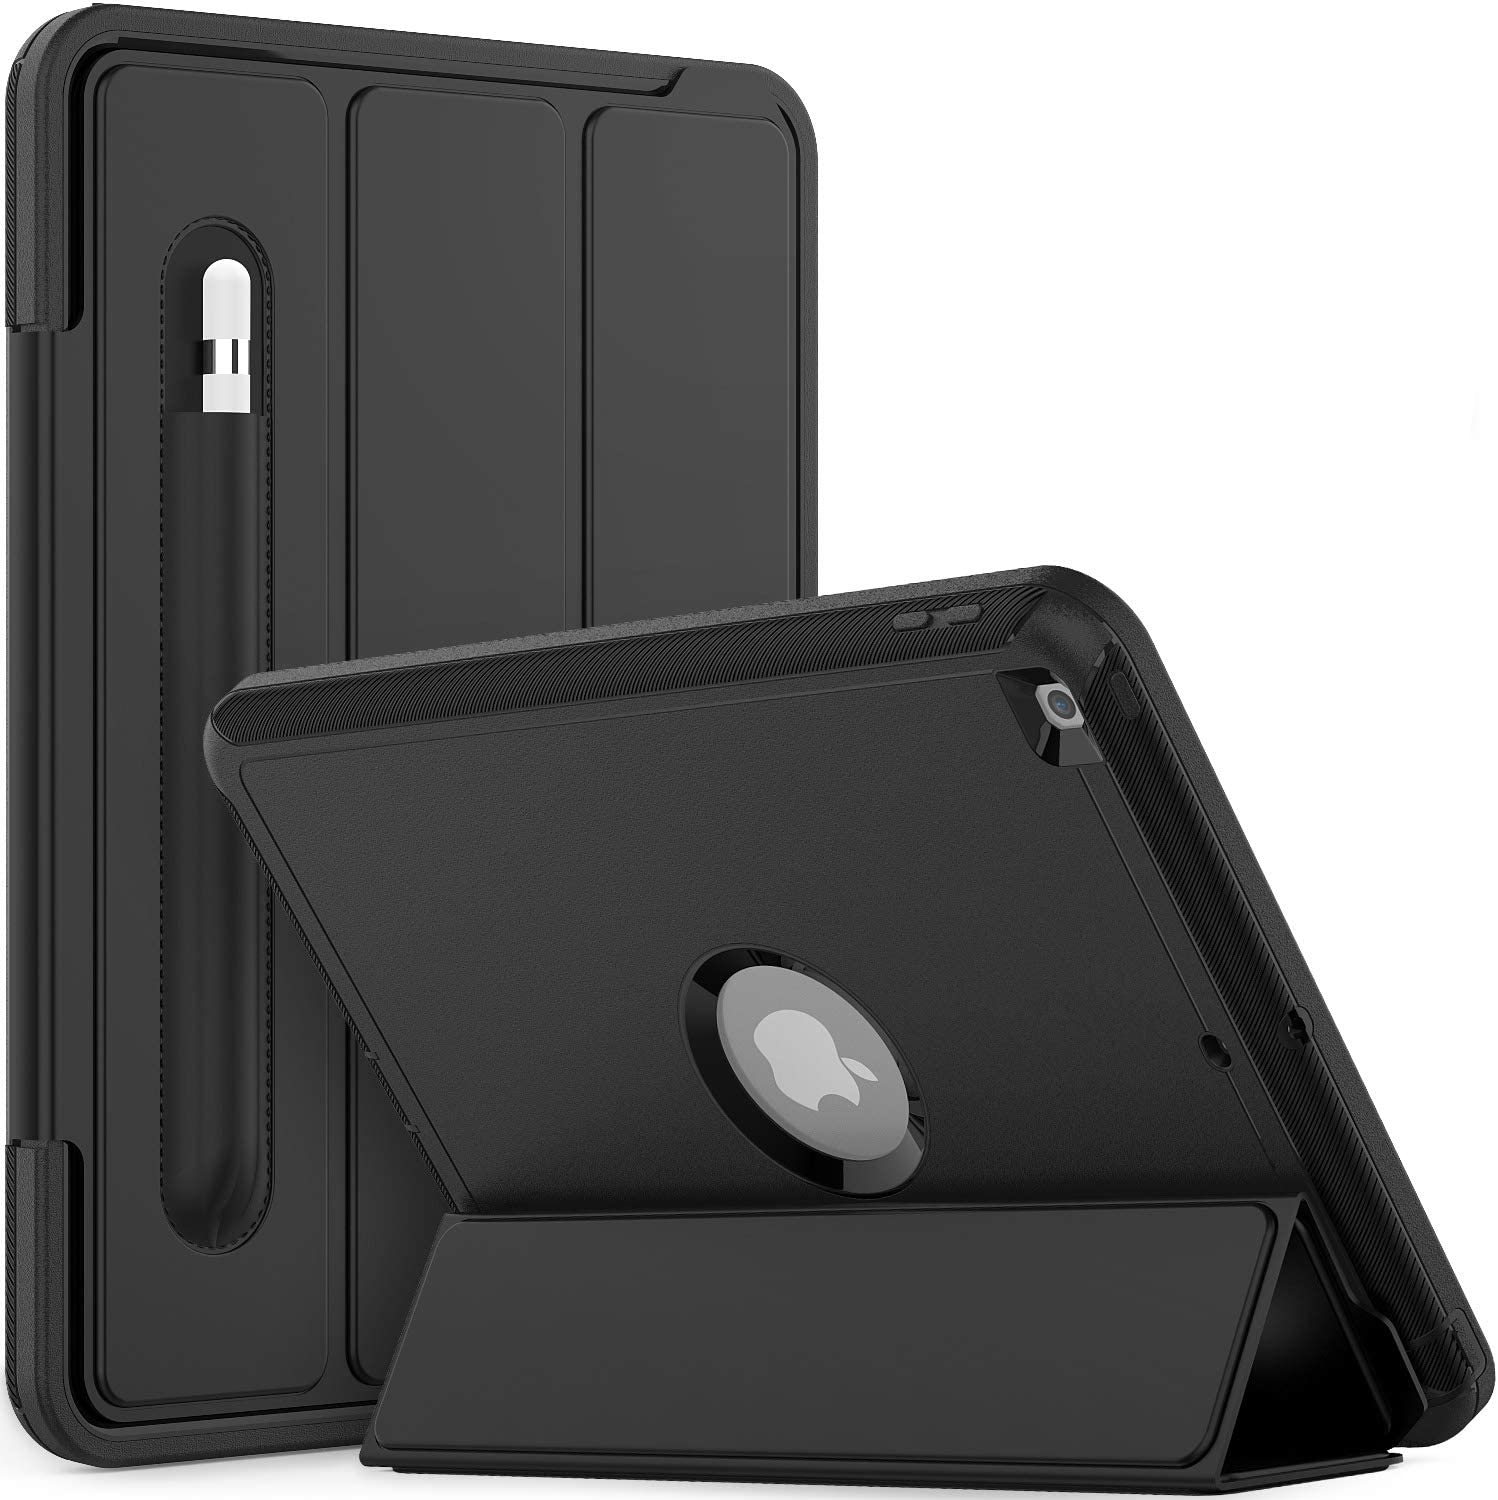 Timecity iPad 8th/ 7th Generation Case 10.2 2020/2019.Auto Wake/Sleep Magnetic Smart Tablet Case with Pencil Holder Stand, Three Layer Rugged Heavy Duty Case for iPad 8th/ 7th Gen 10.2 Inch,Black